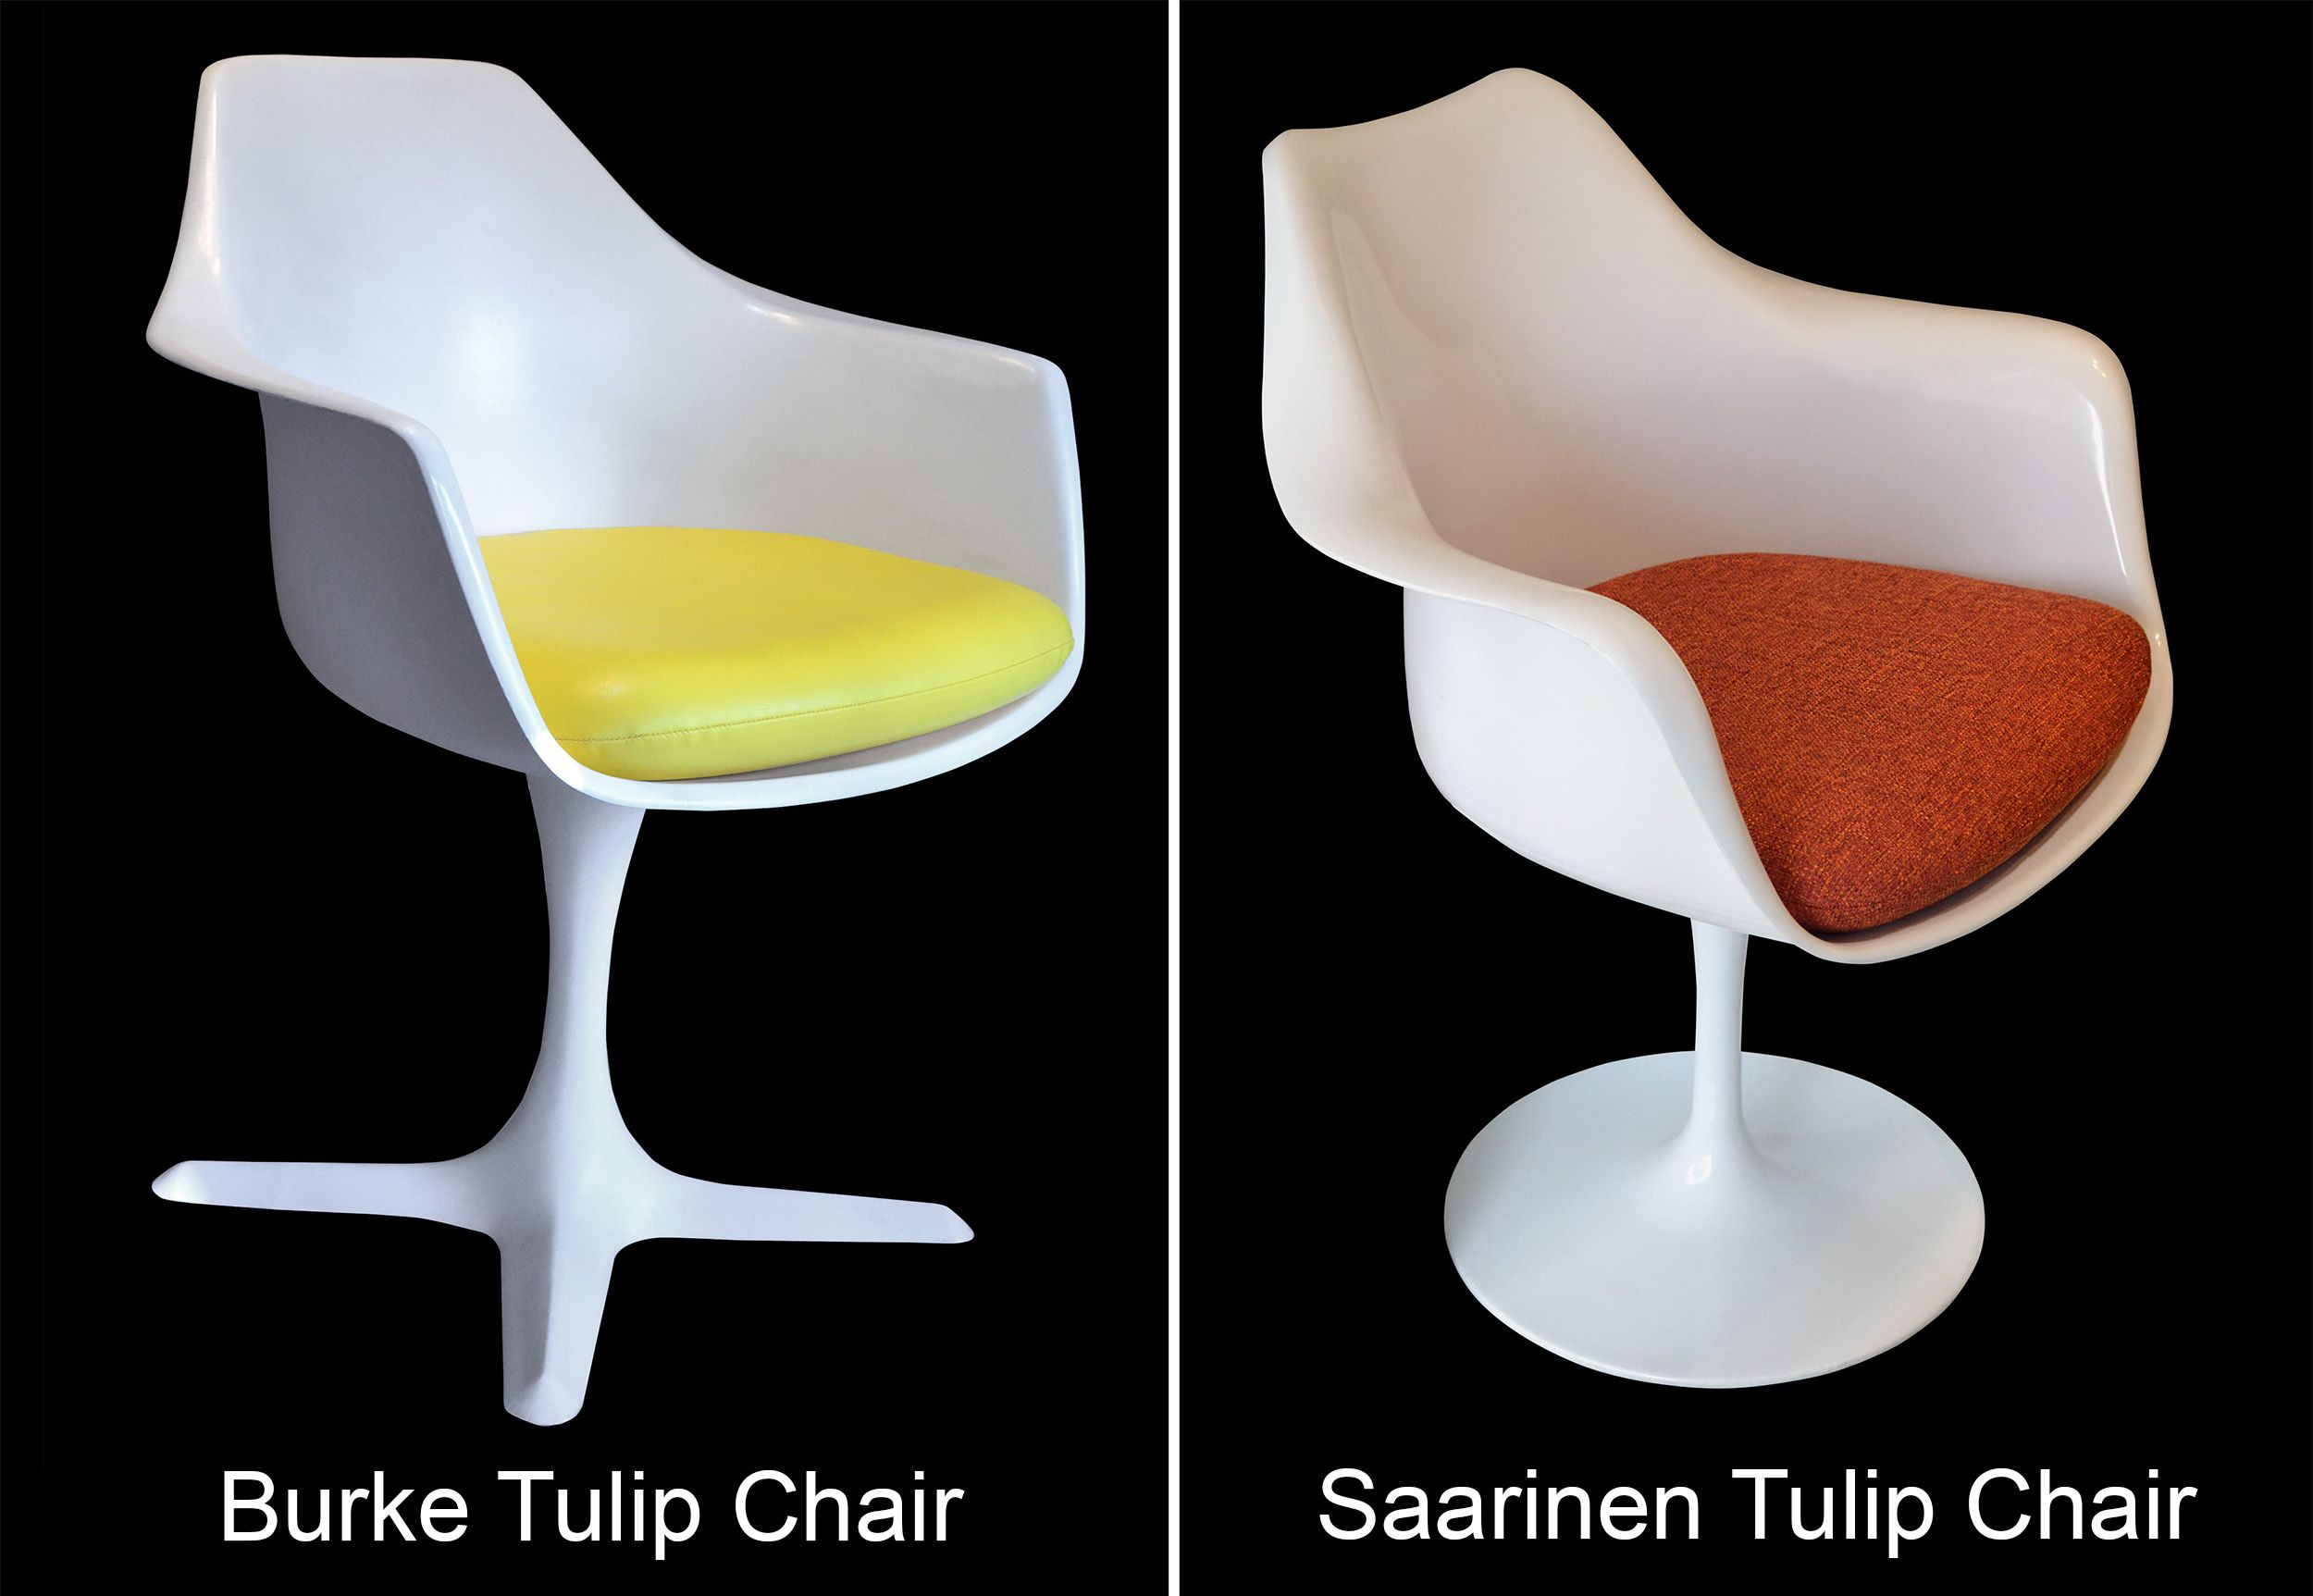 Cushions For Both Burke And Saarinen Tulip Chairs Available On